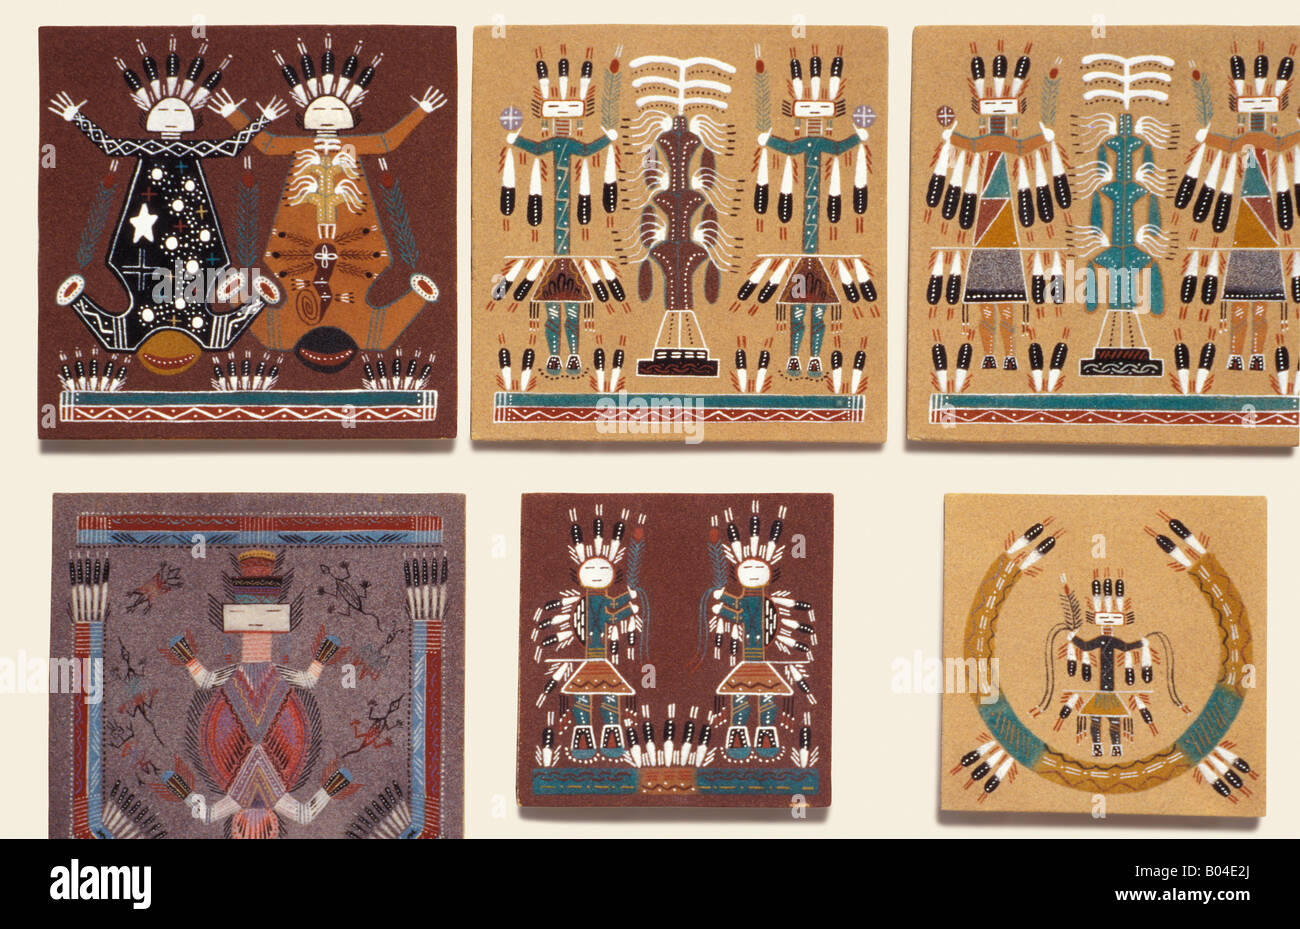 navajo sand painting photos navajo sand painting images alamy. Black Bedroom Furniture Sets. Home Design Ideas